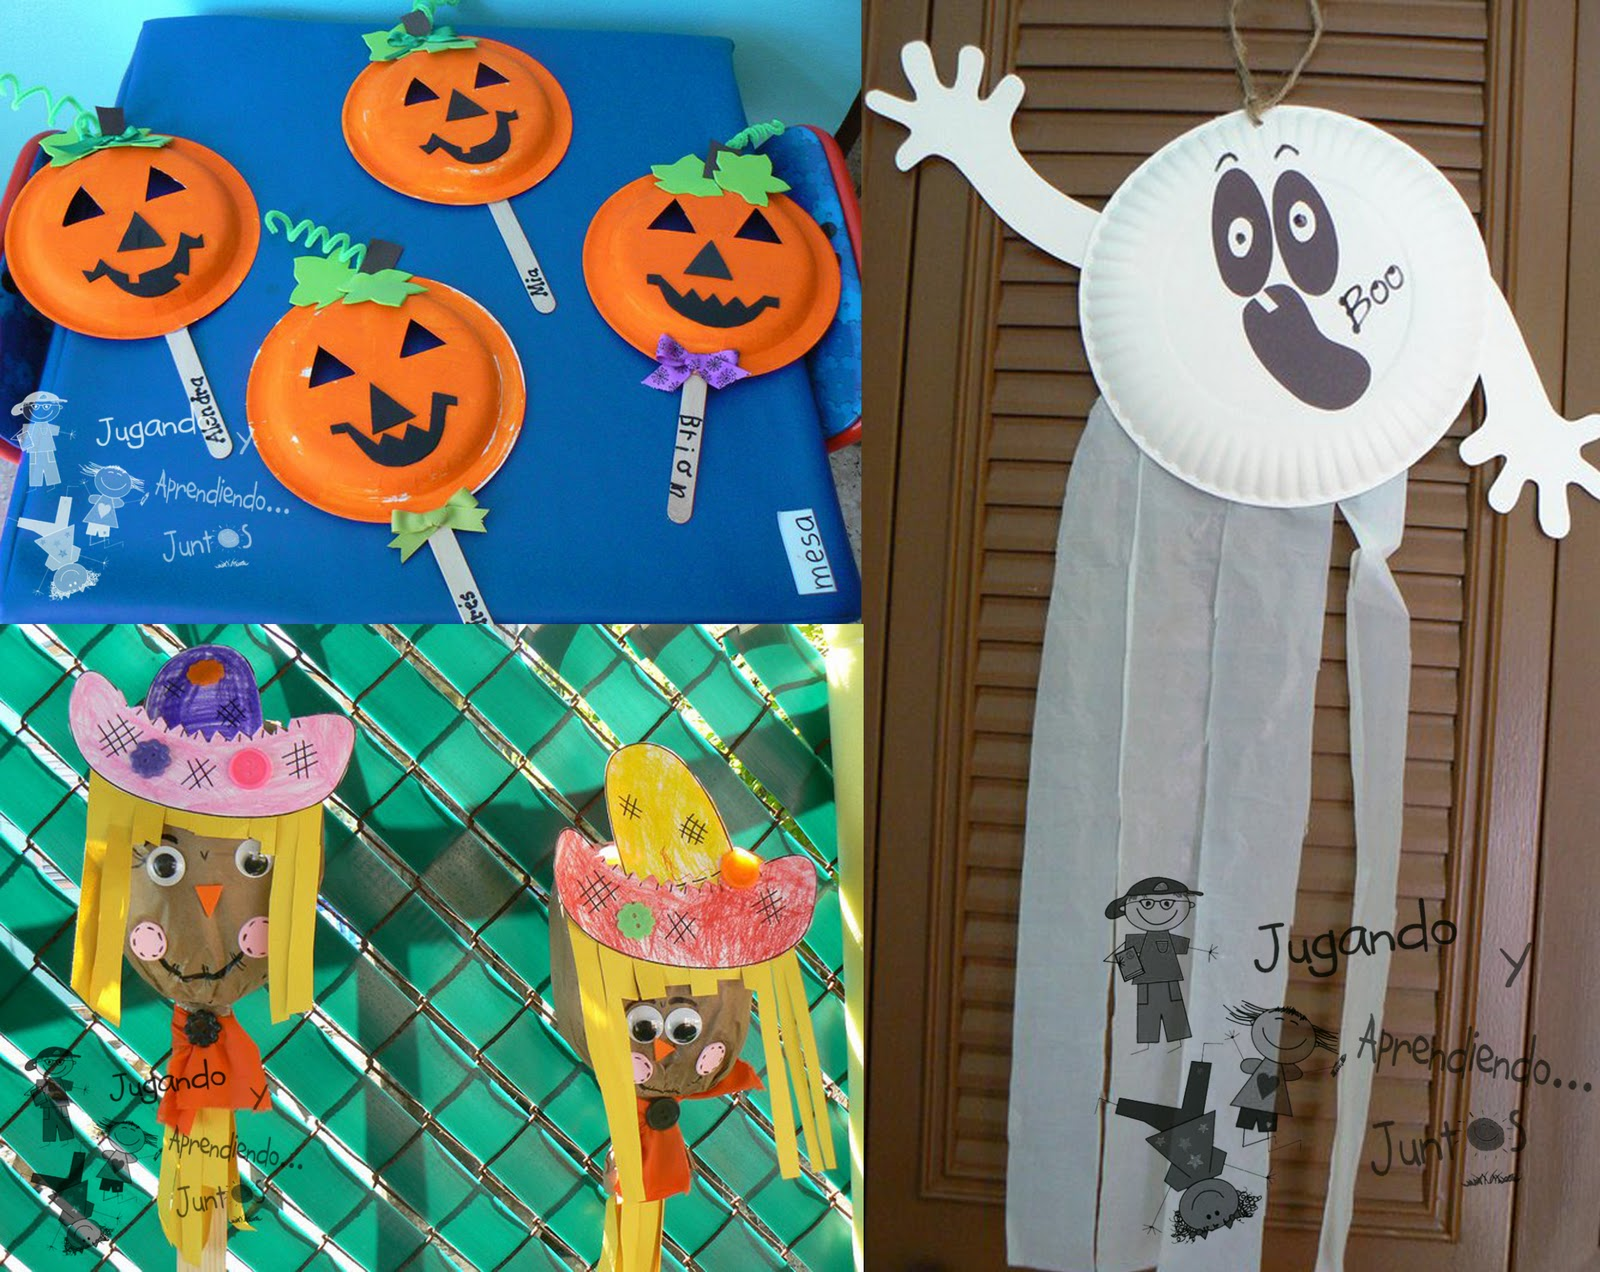 crafts for kids to make for halloween - Preschool Halloween Crafts Ideas